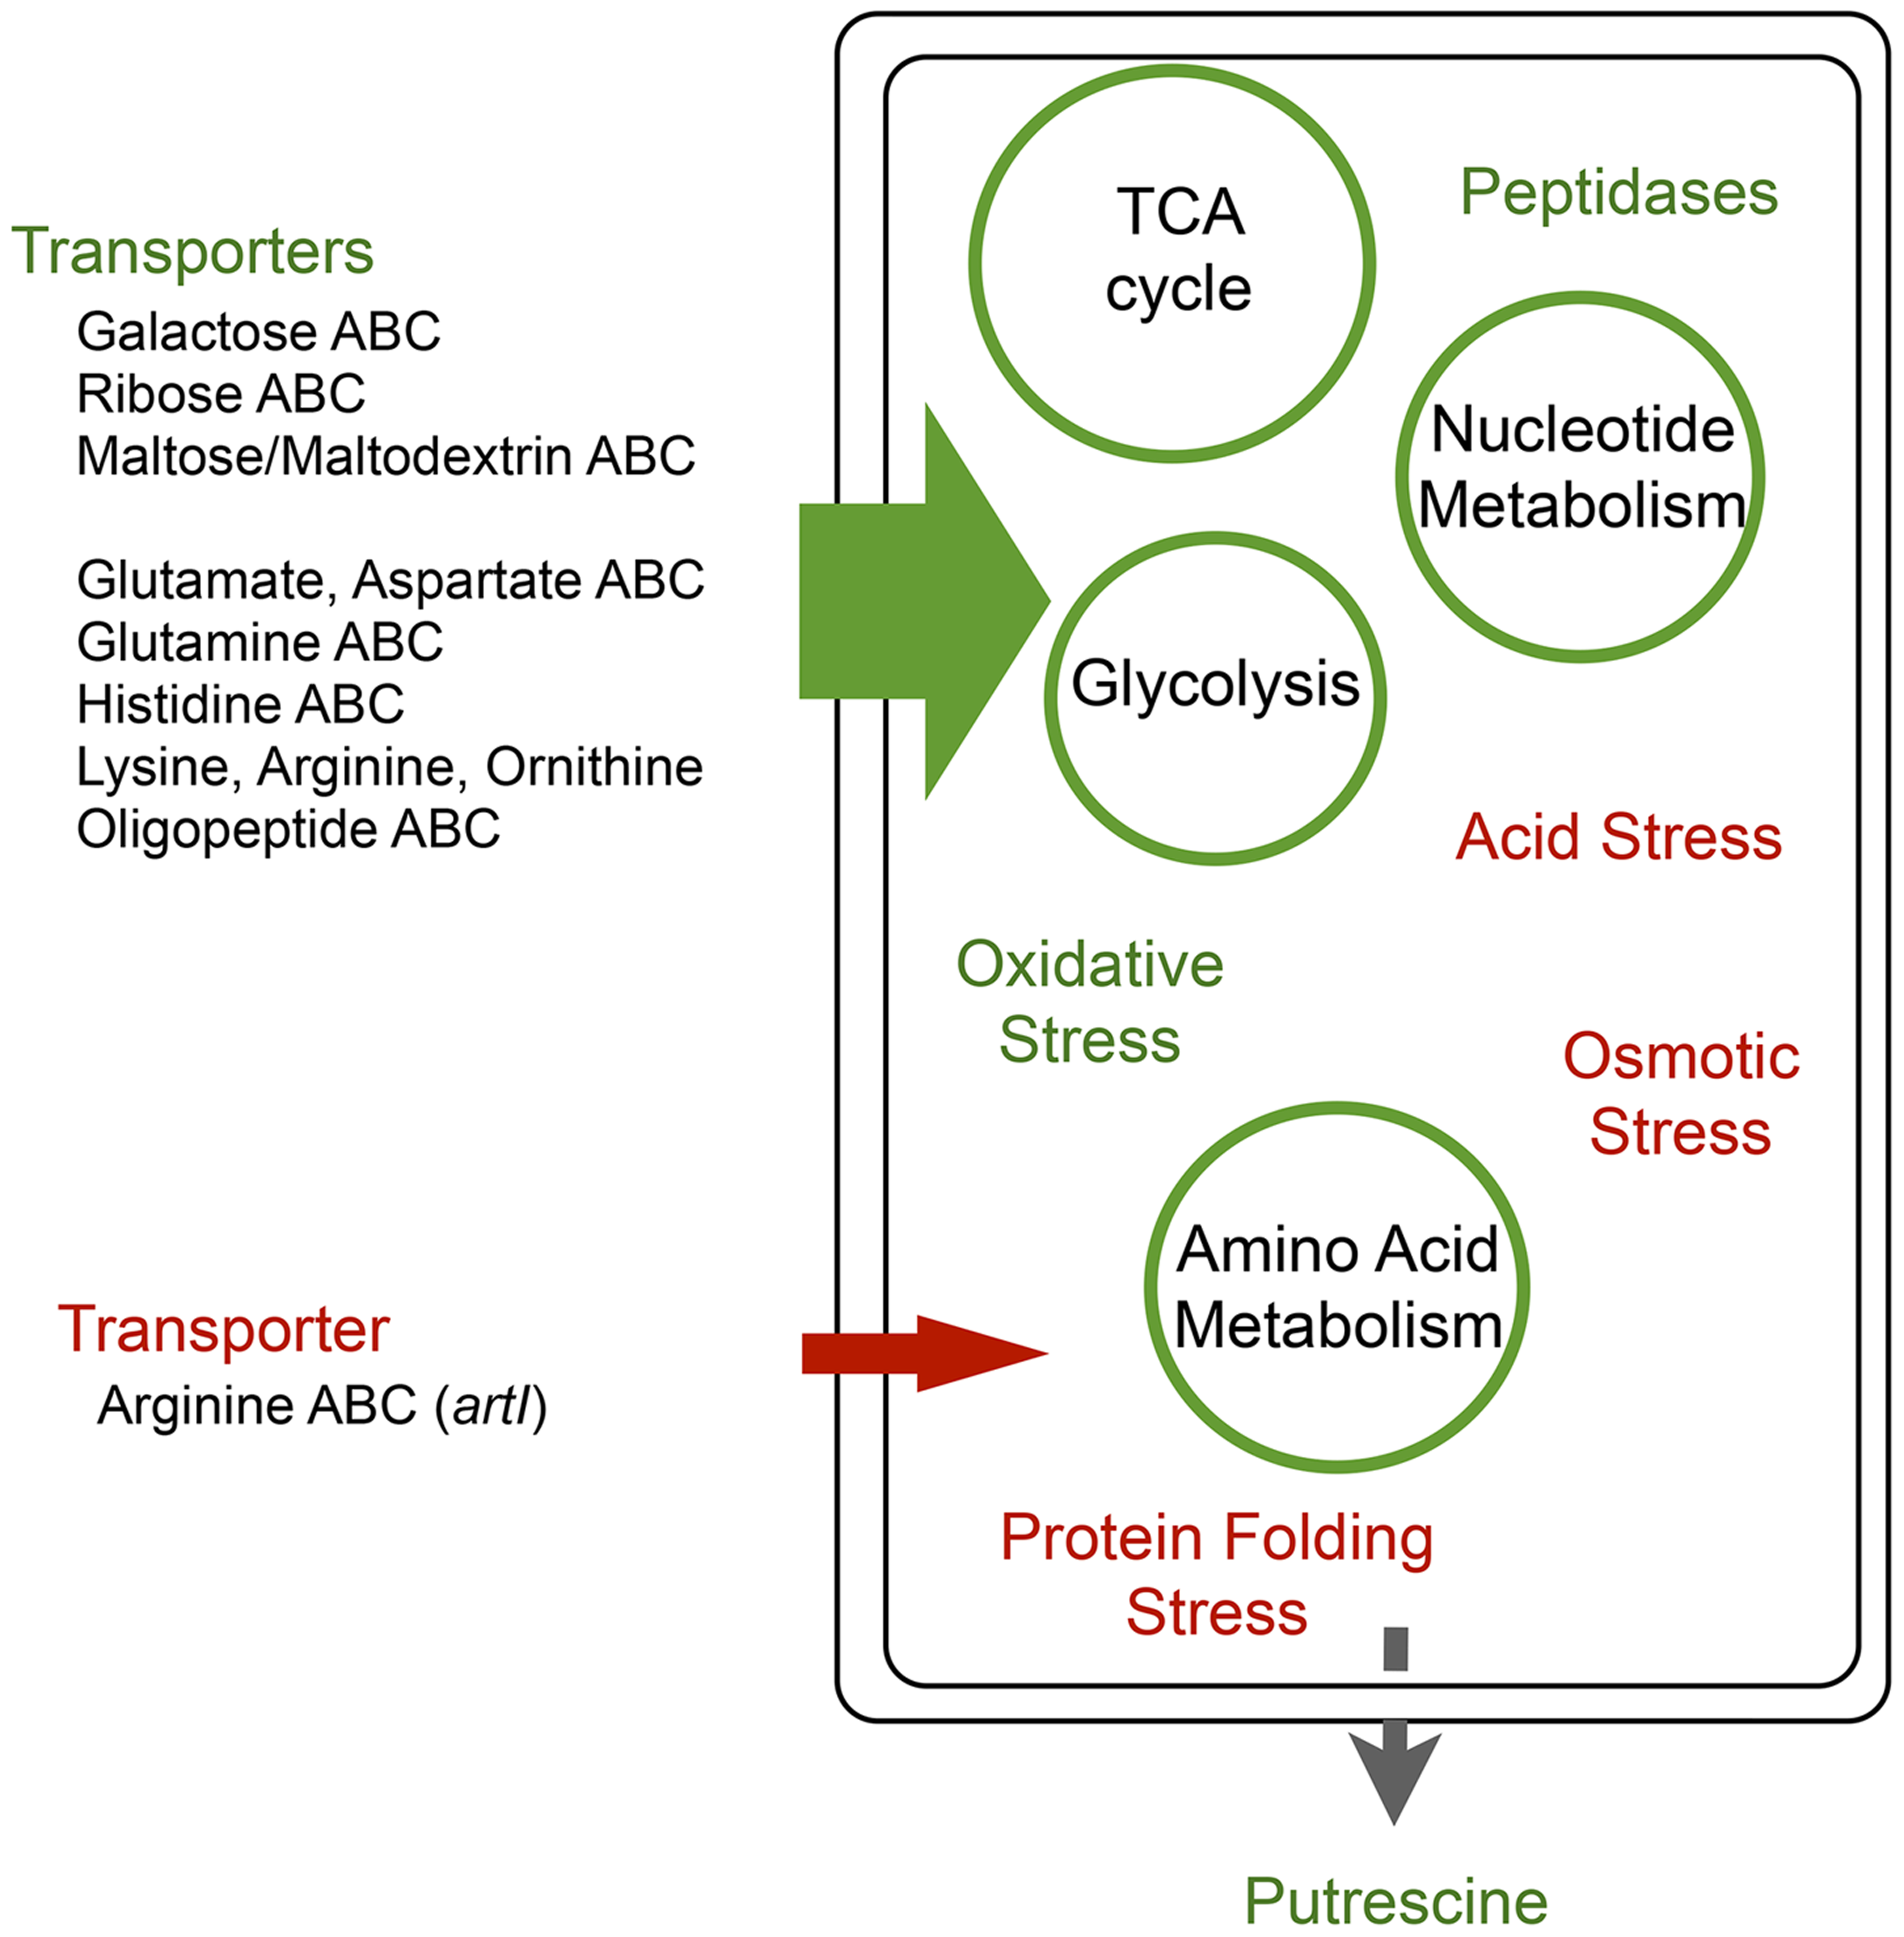 Global regulators <i>arcA</i> and <i>rpoS</i> provide a comprehensive metabolic shift during adaptation that circumvents epistatic bottlenecks.